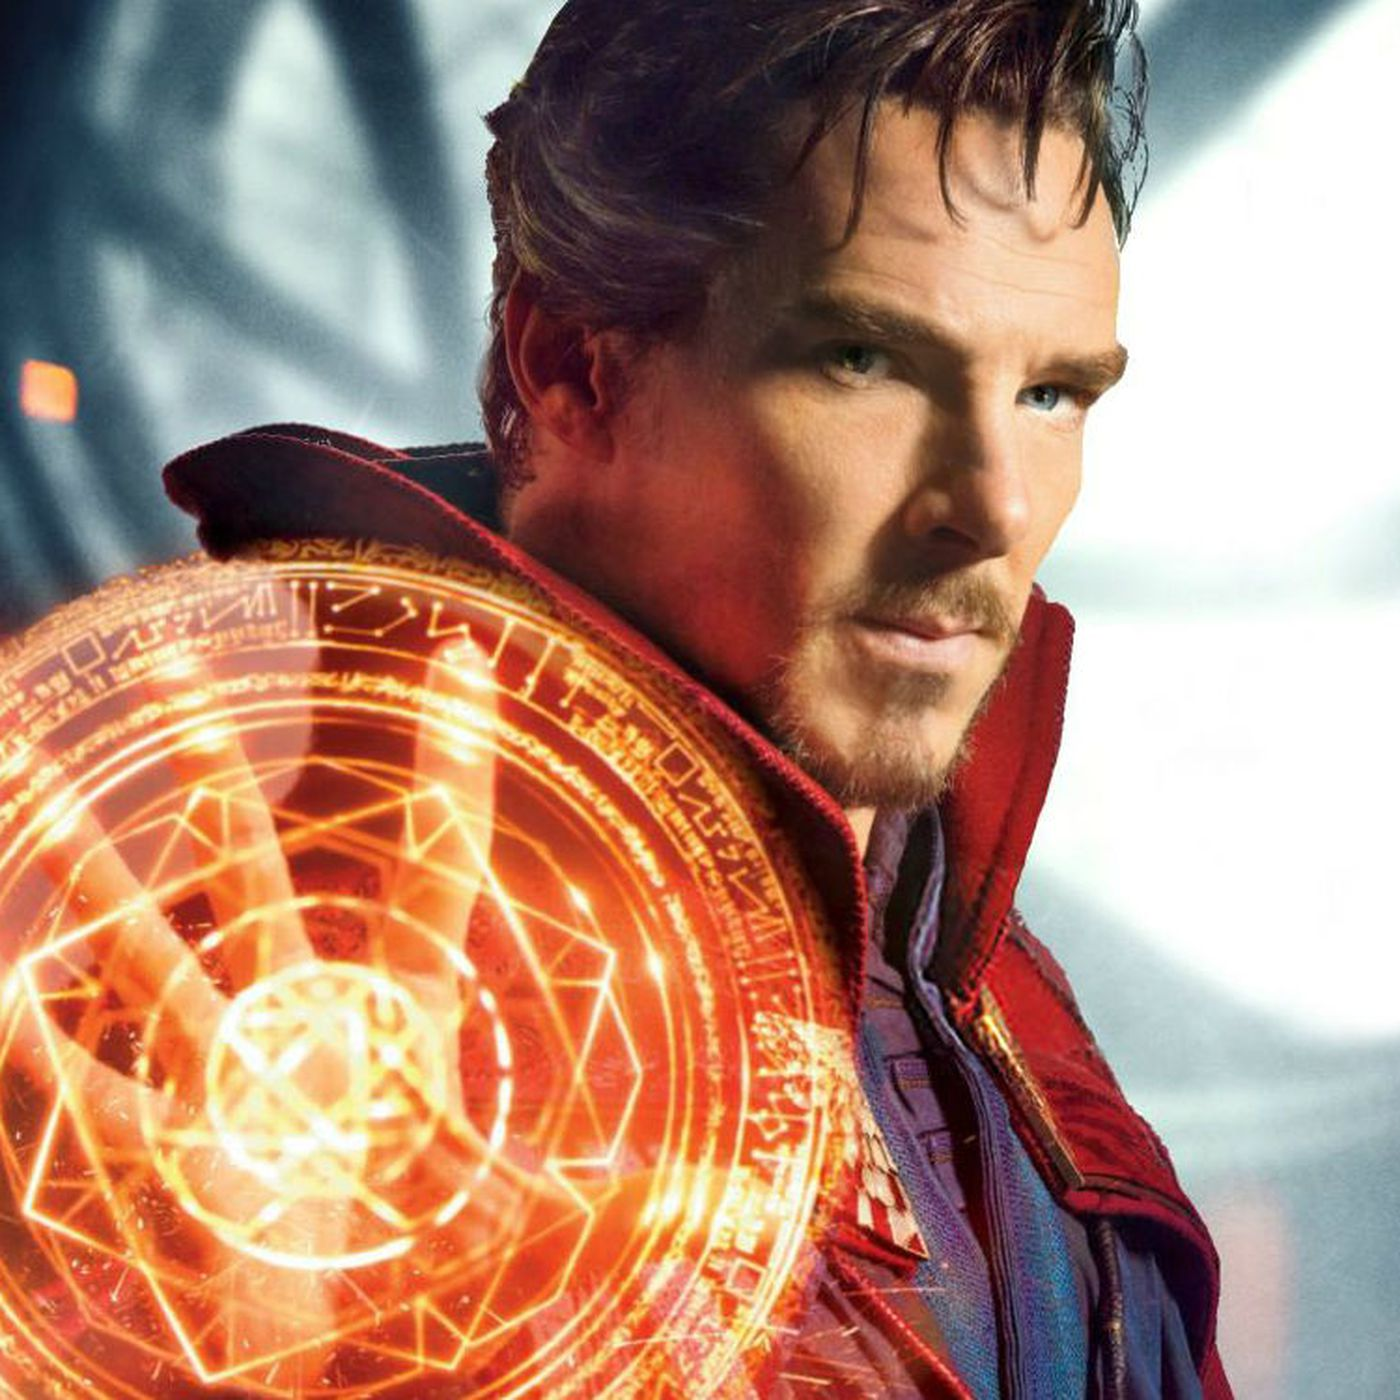 Doctor Strange's murky morality brings it close to being a supervillain origin story - The Verge